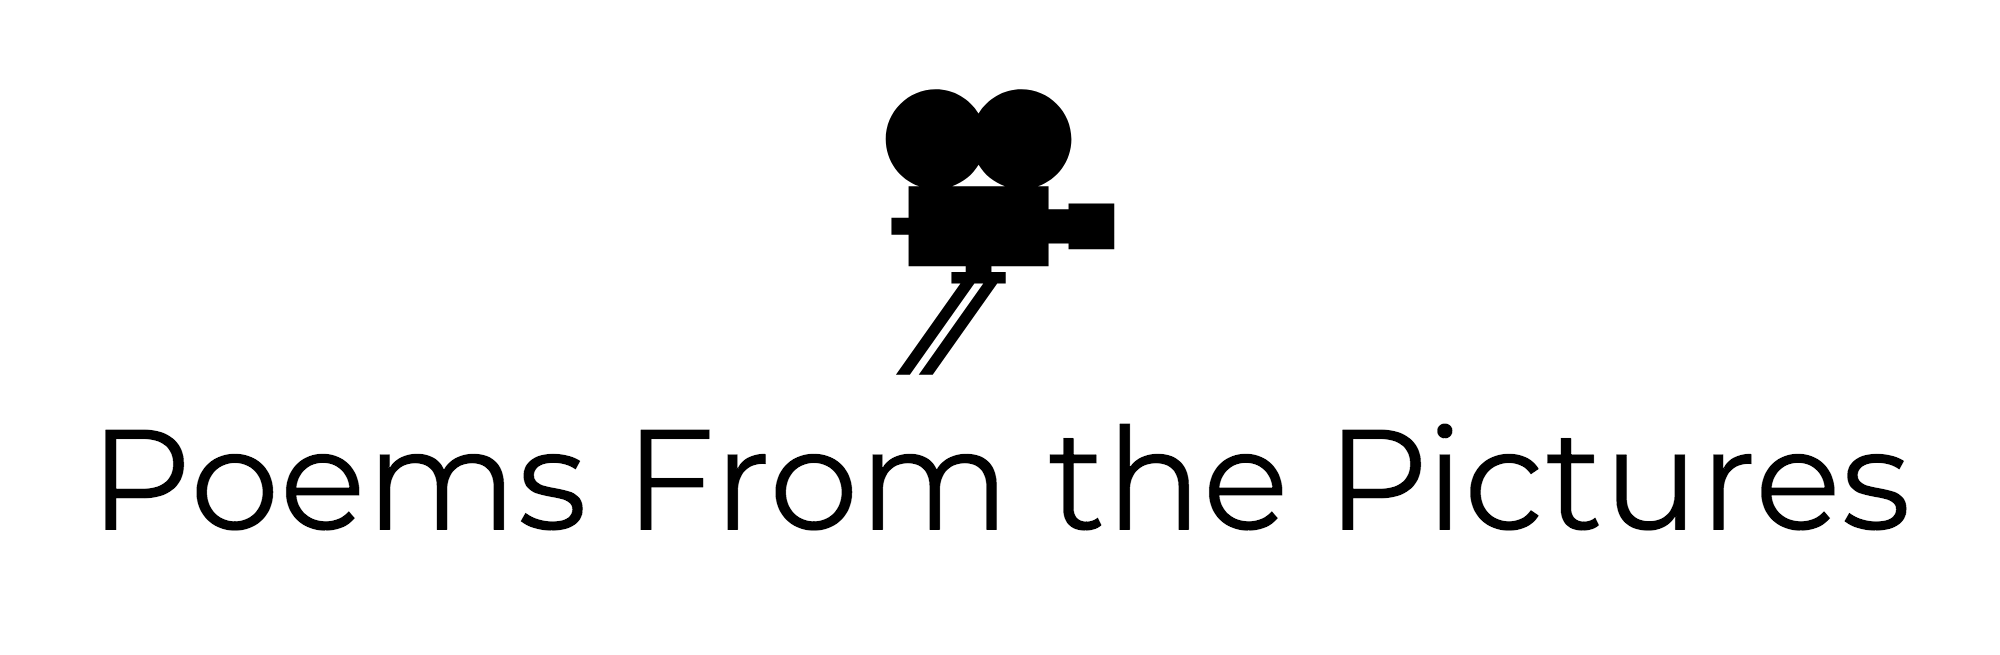 Poems From the Pictures-logo-black.png